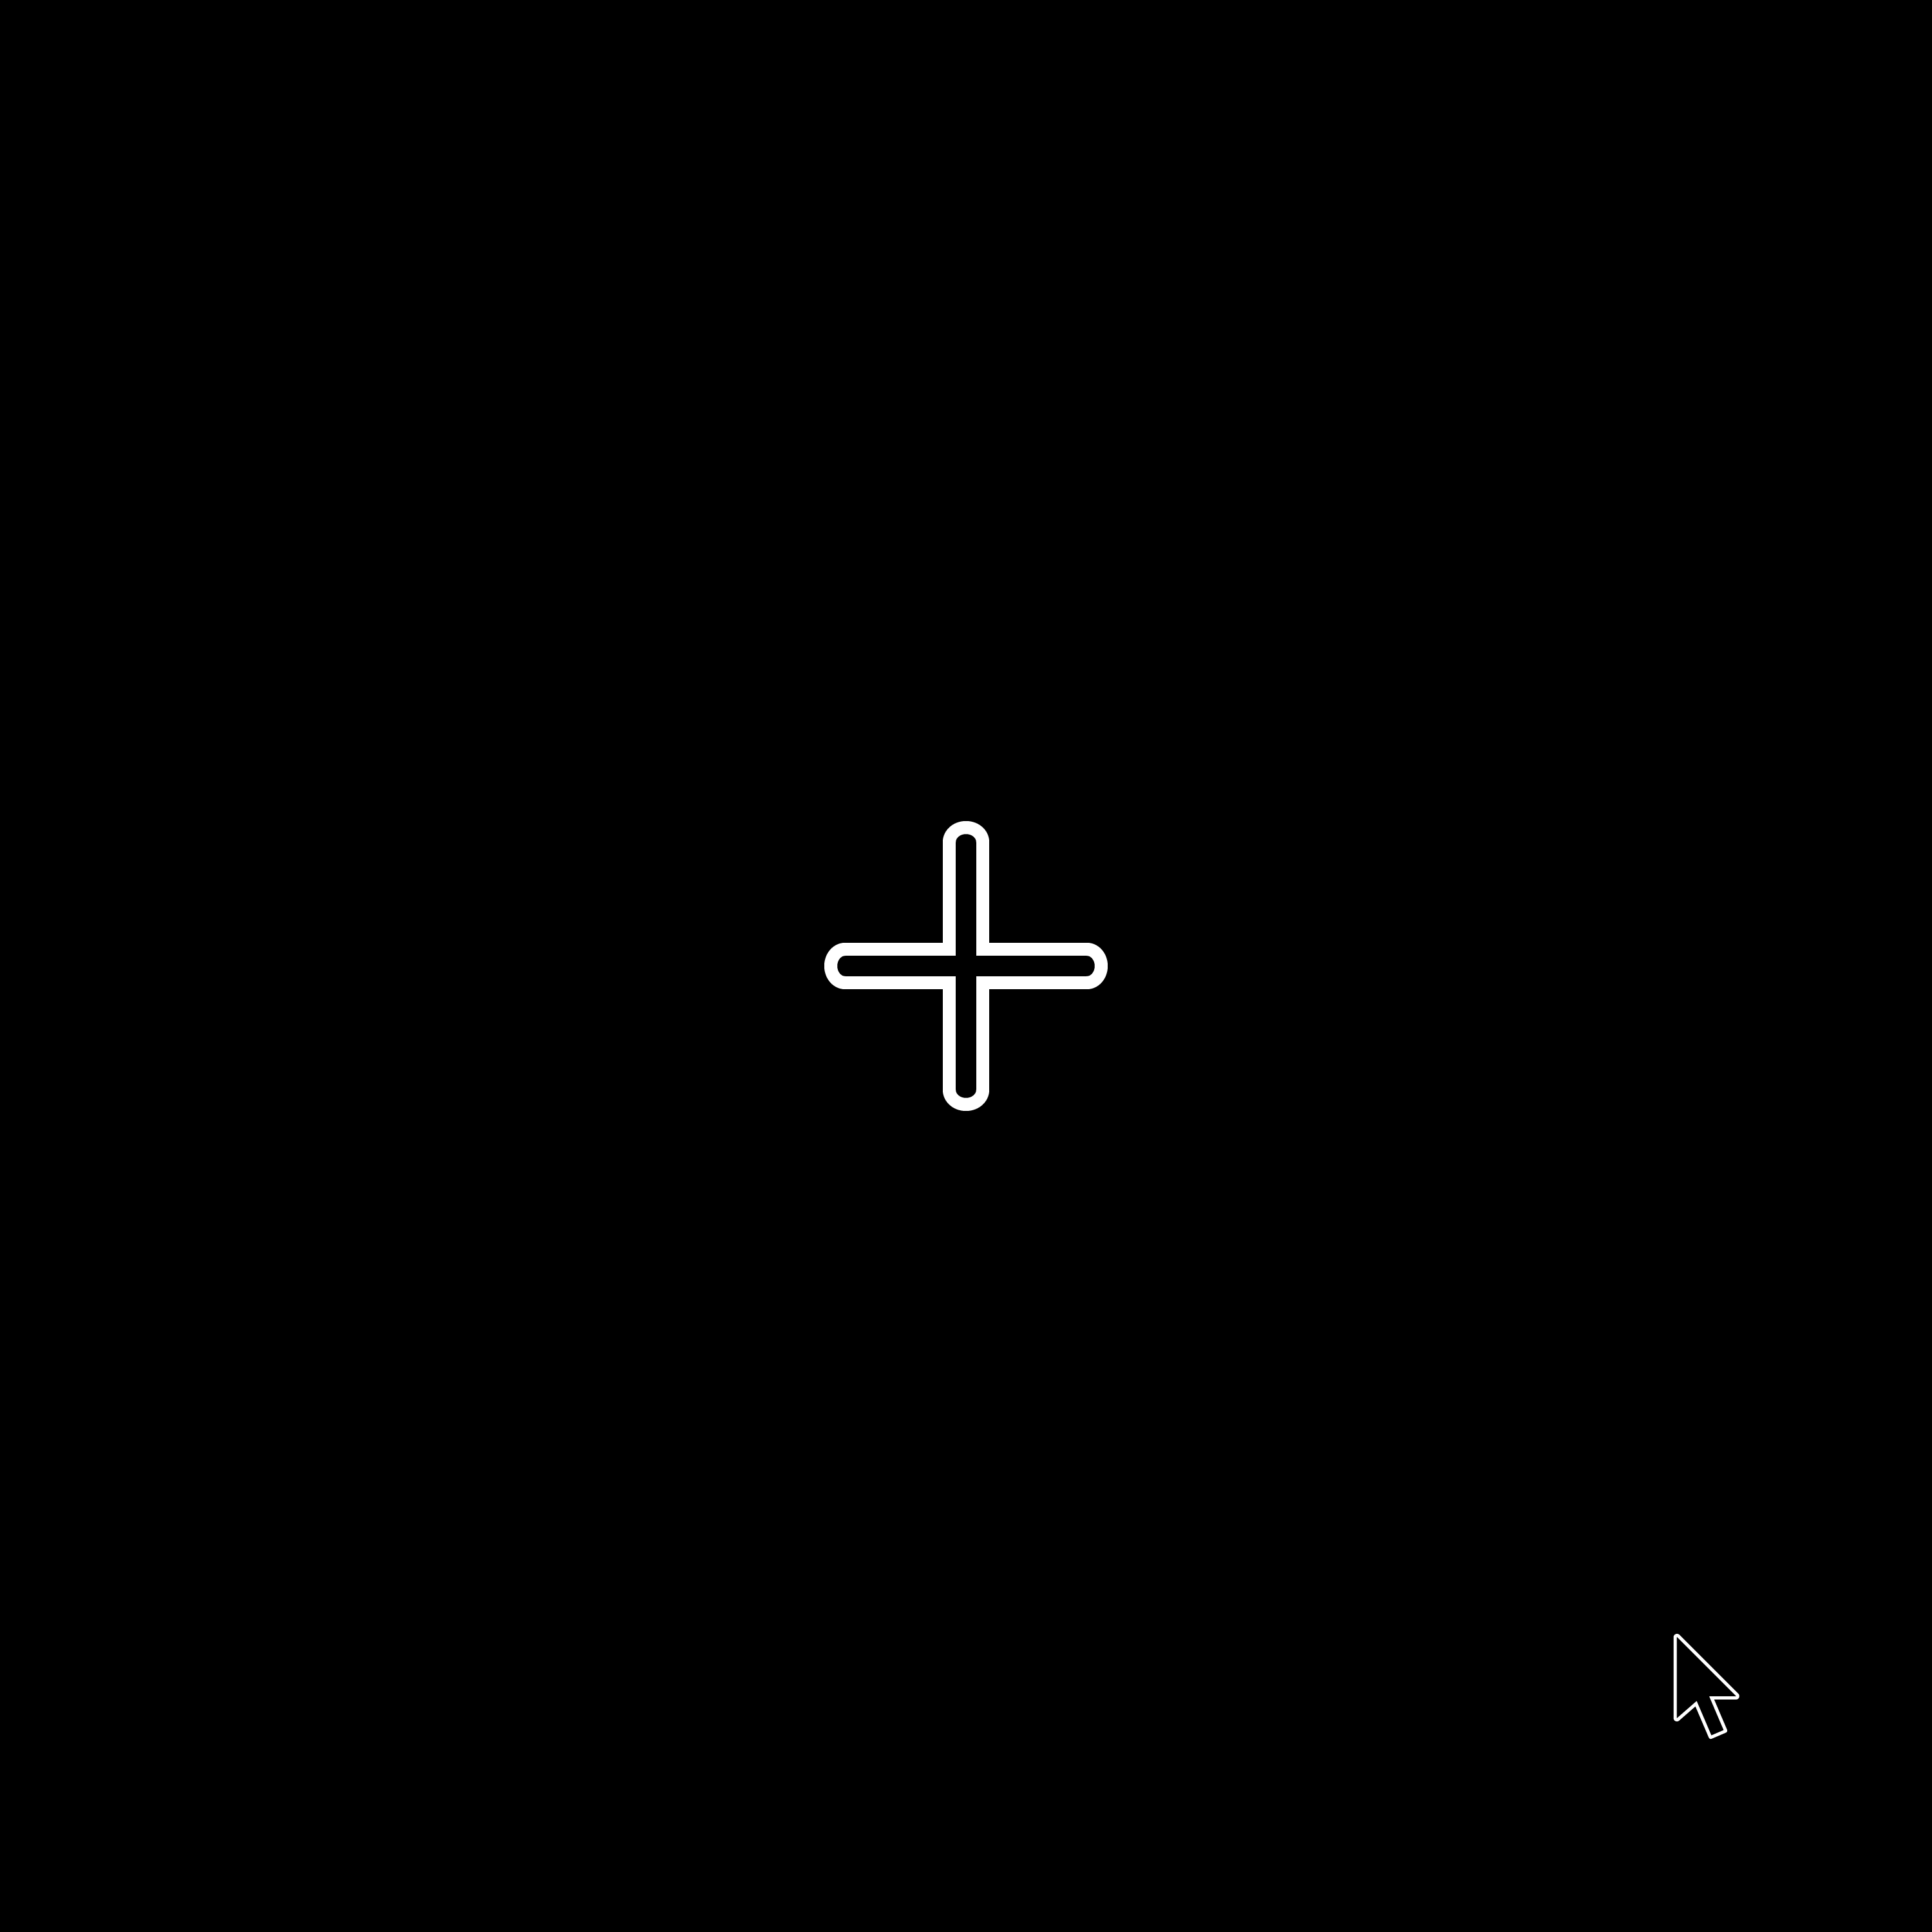 Illustration of precise cross and pointer